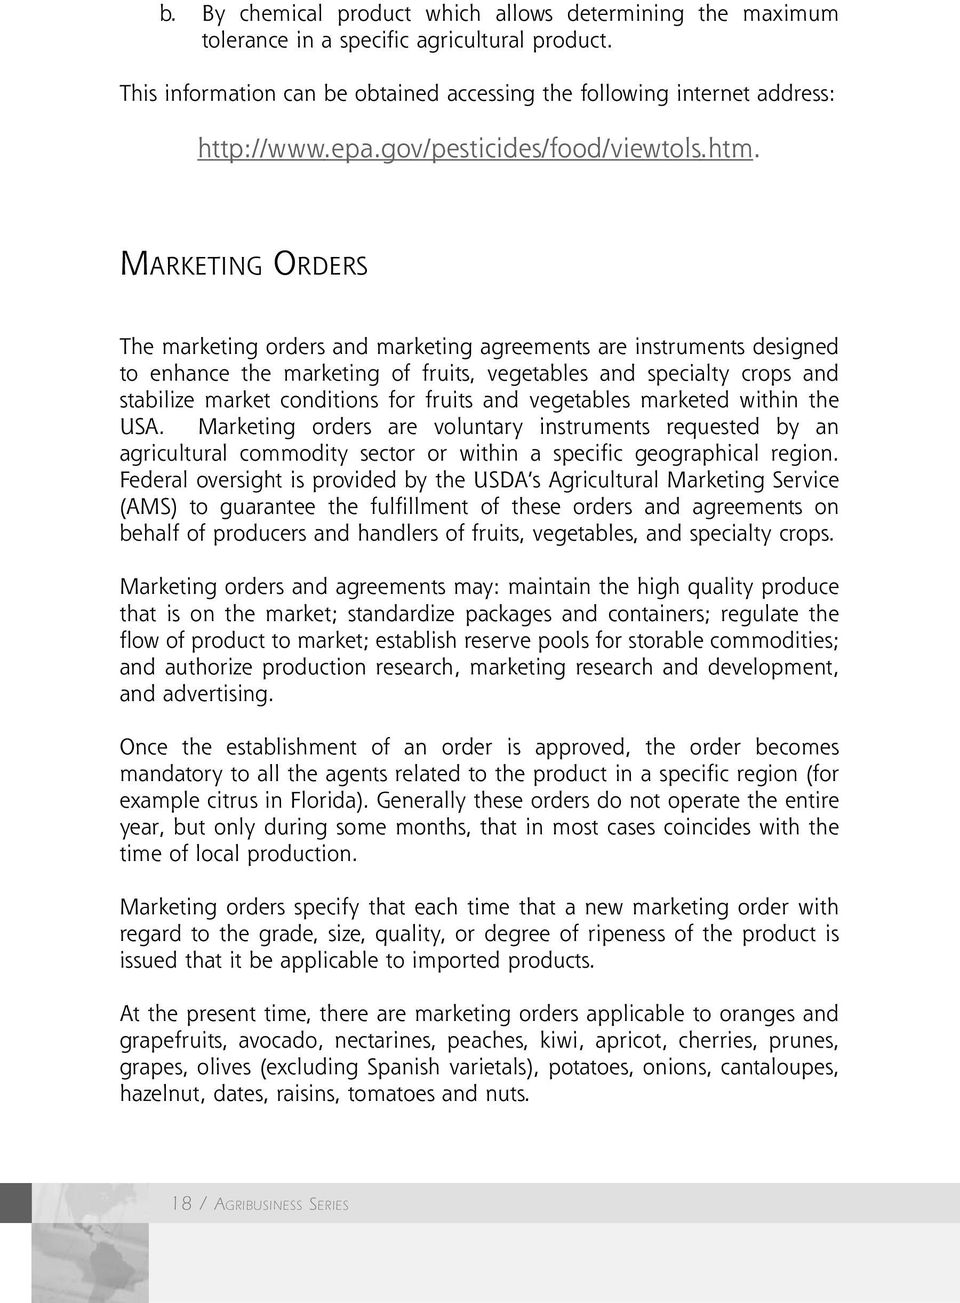 MARKETING ORDERS The marketing orders and marketing agreements are instruments designed to enhance the marketing of fruits, vegetables and specialty crops and stabilize market conditions for fruits